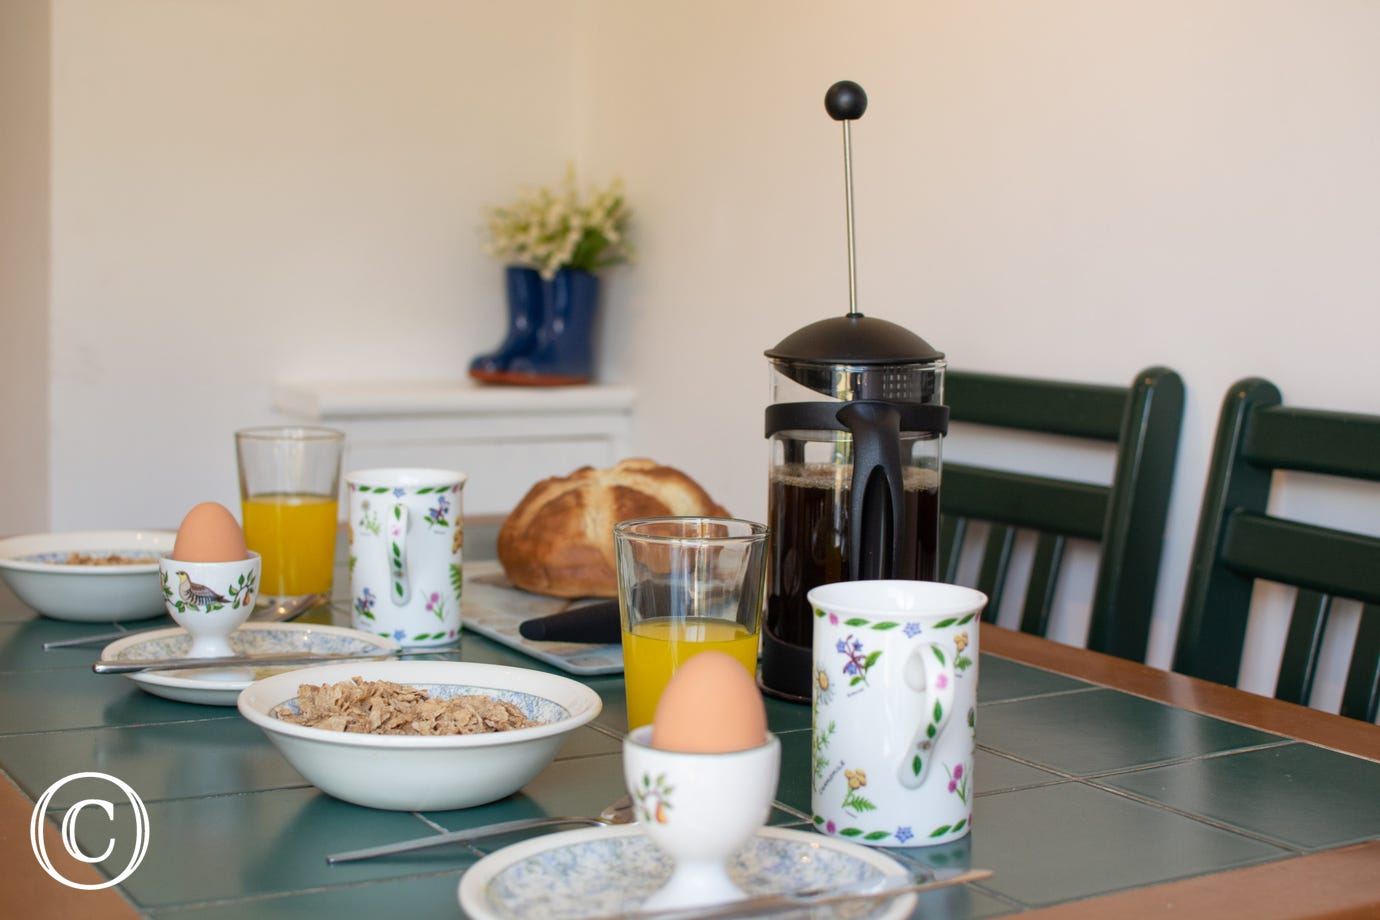 Breakfast at Laburnum House